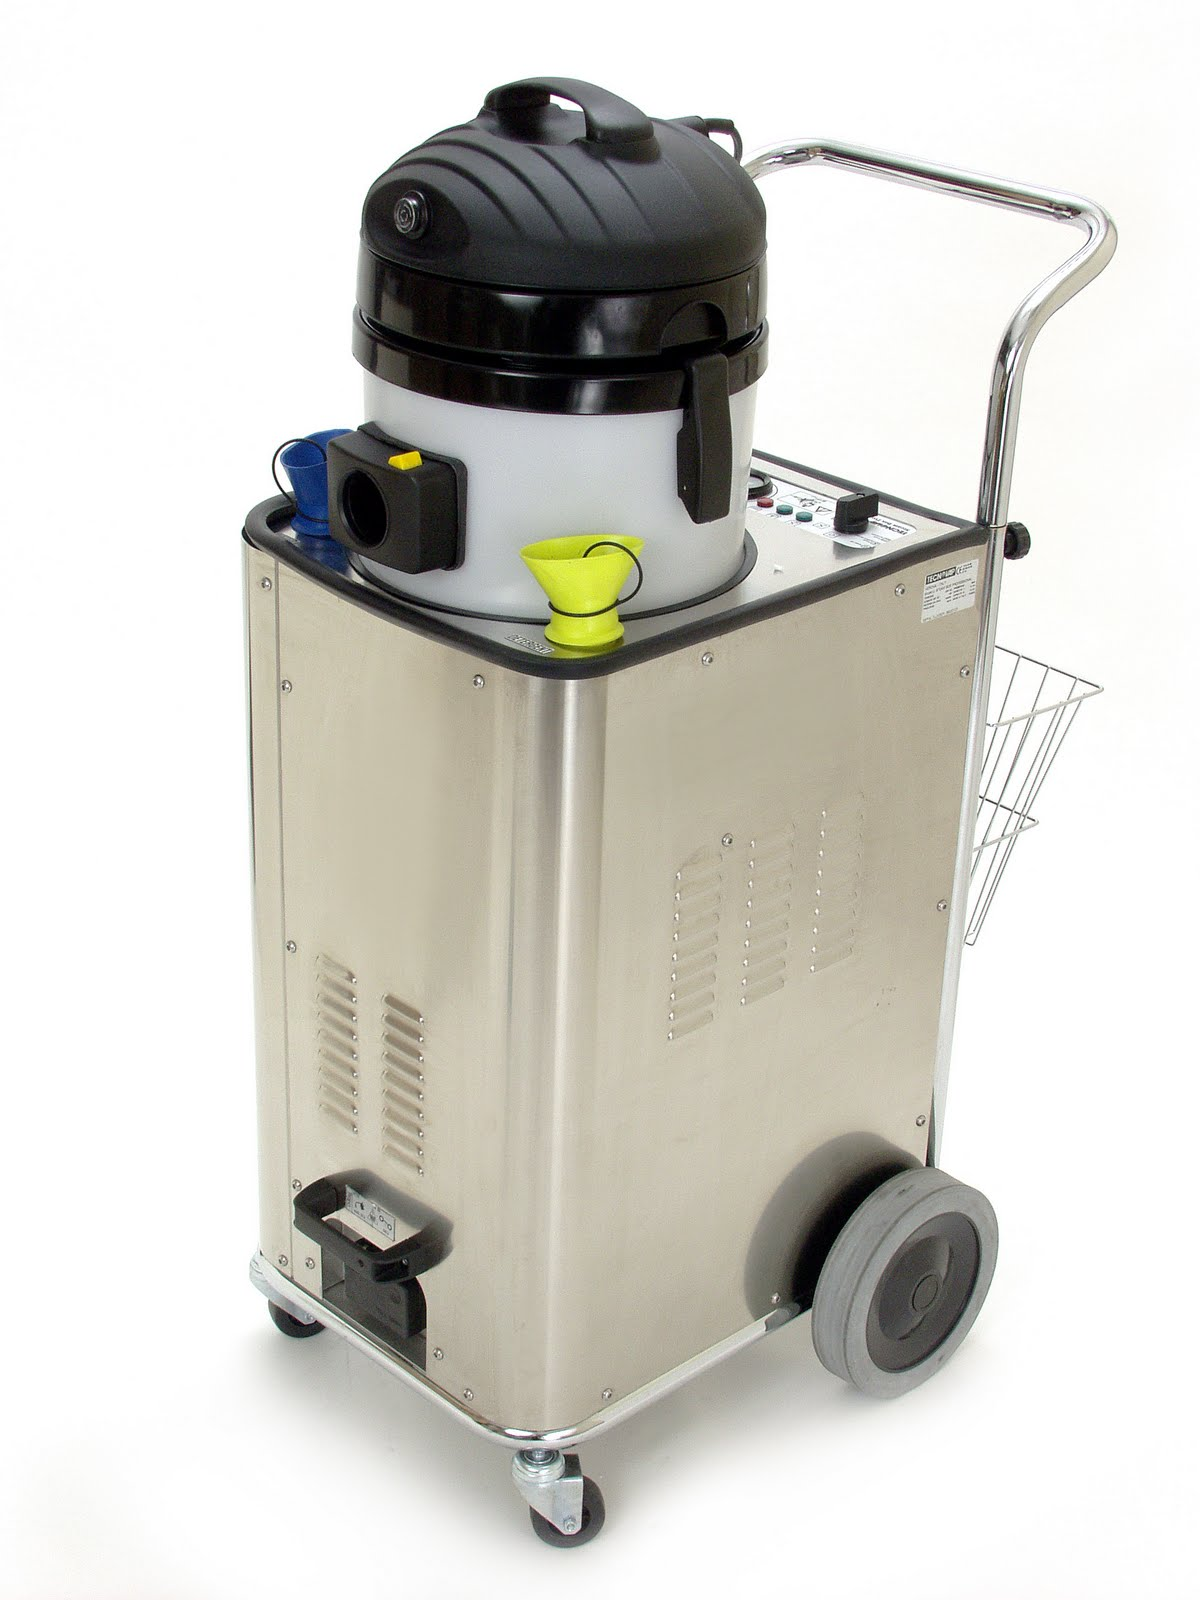 Low Moisture Steam Cleaners